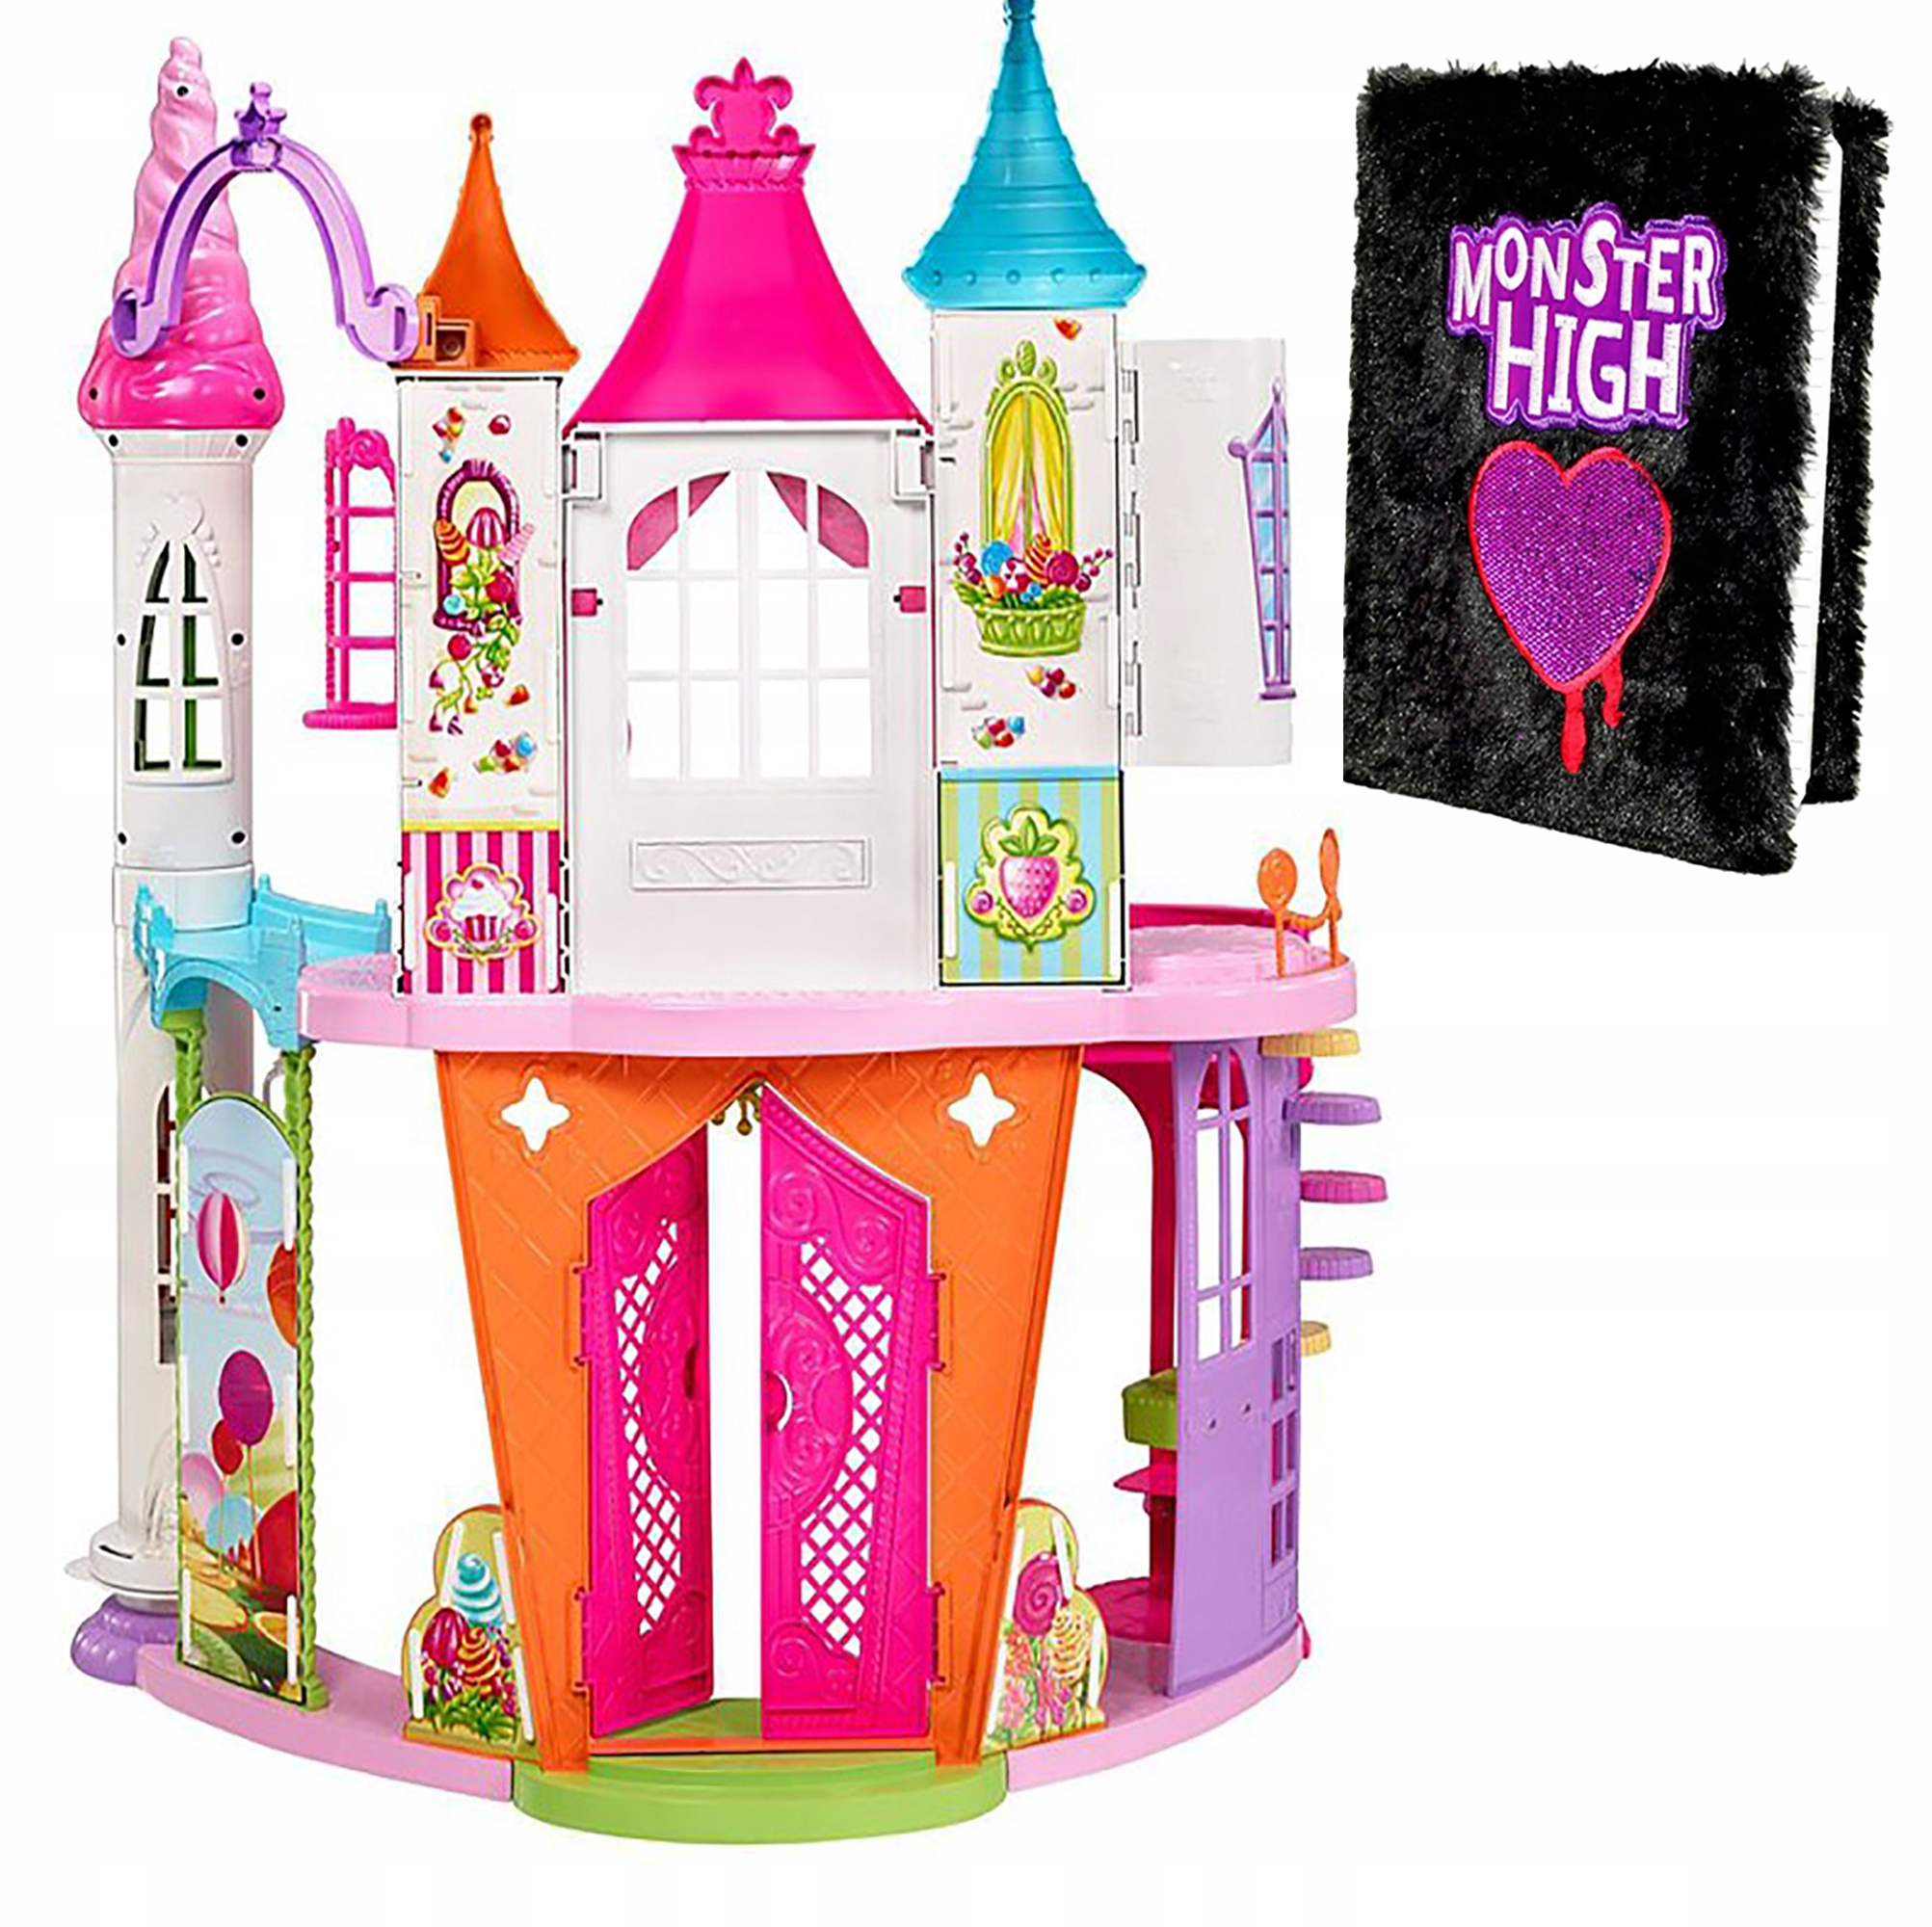 BARBIE DYX32 PALACE CASTLE SWEETNESS LAND DREAMTOP